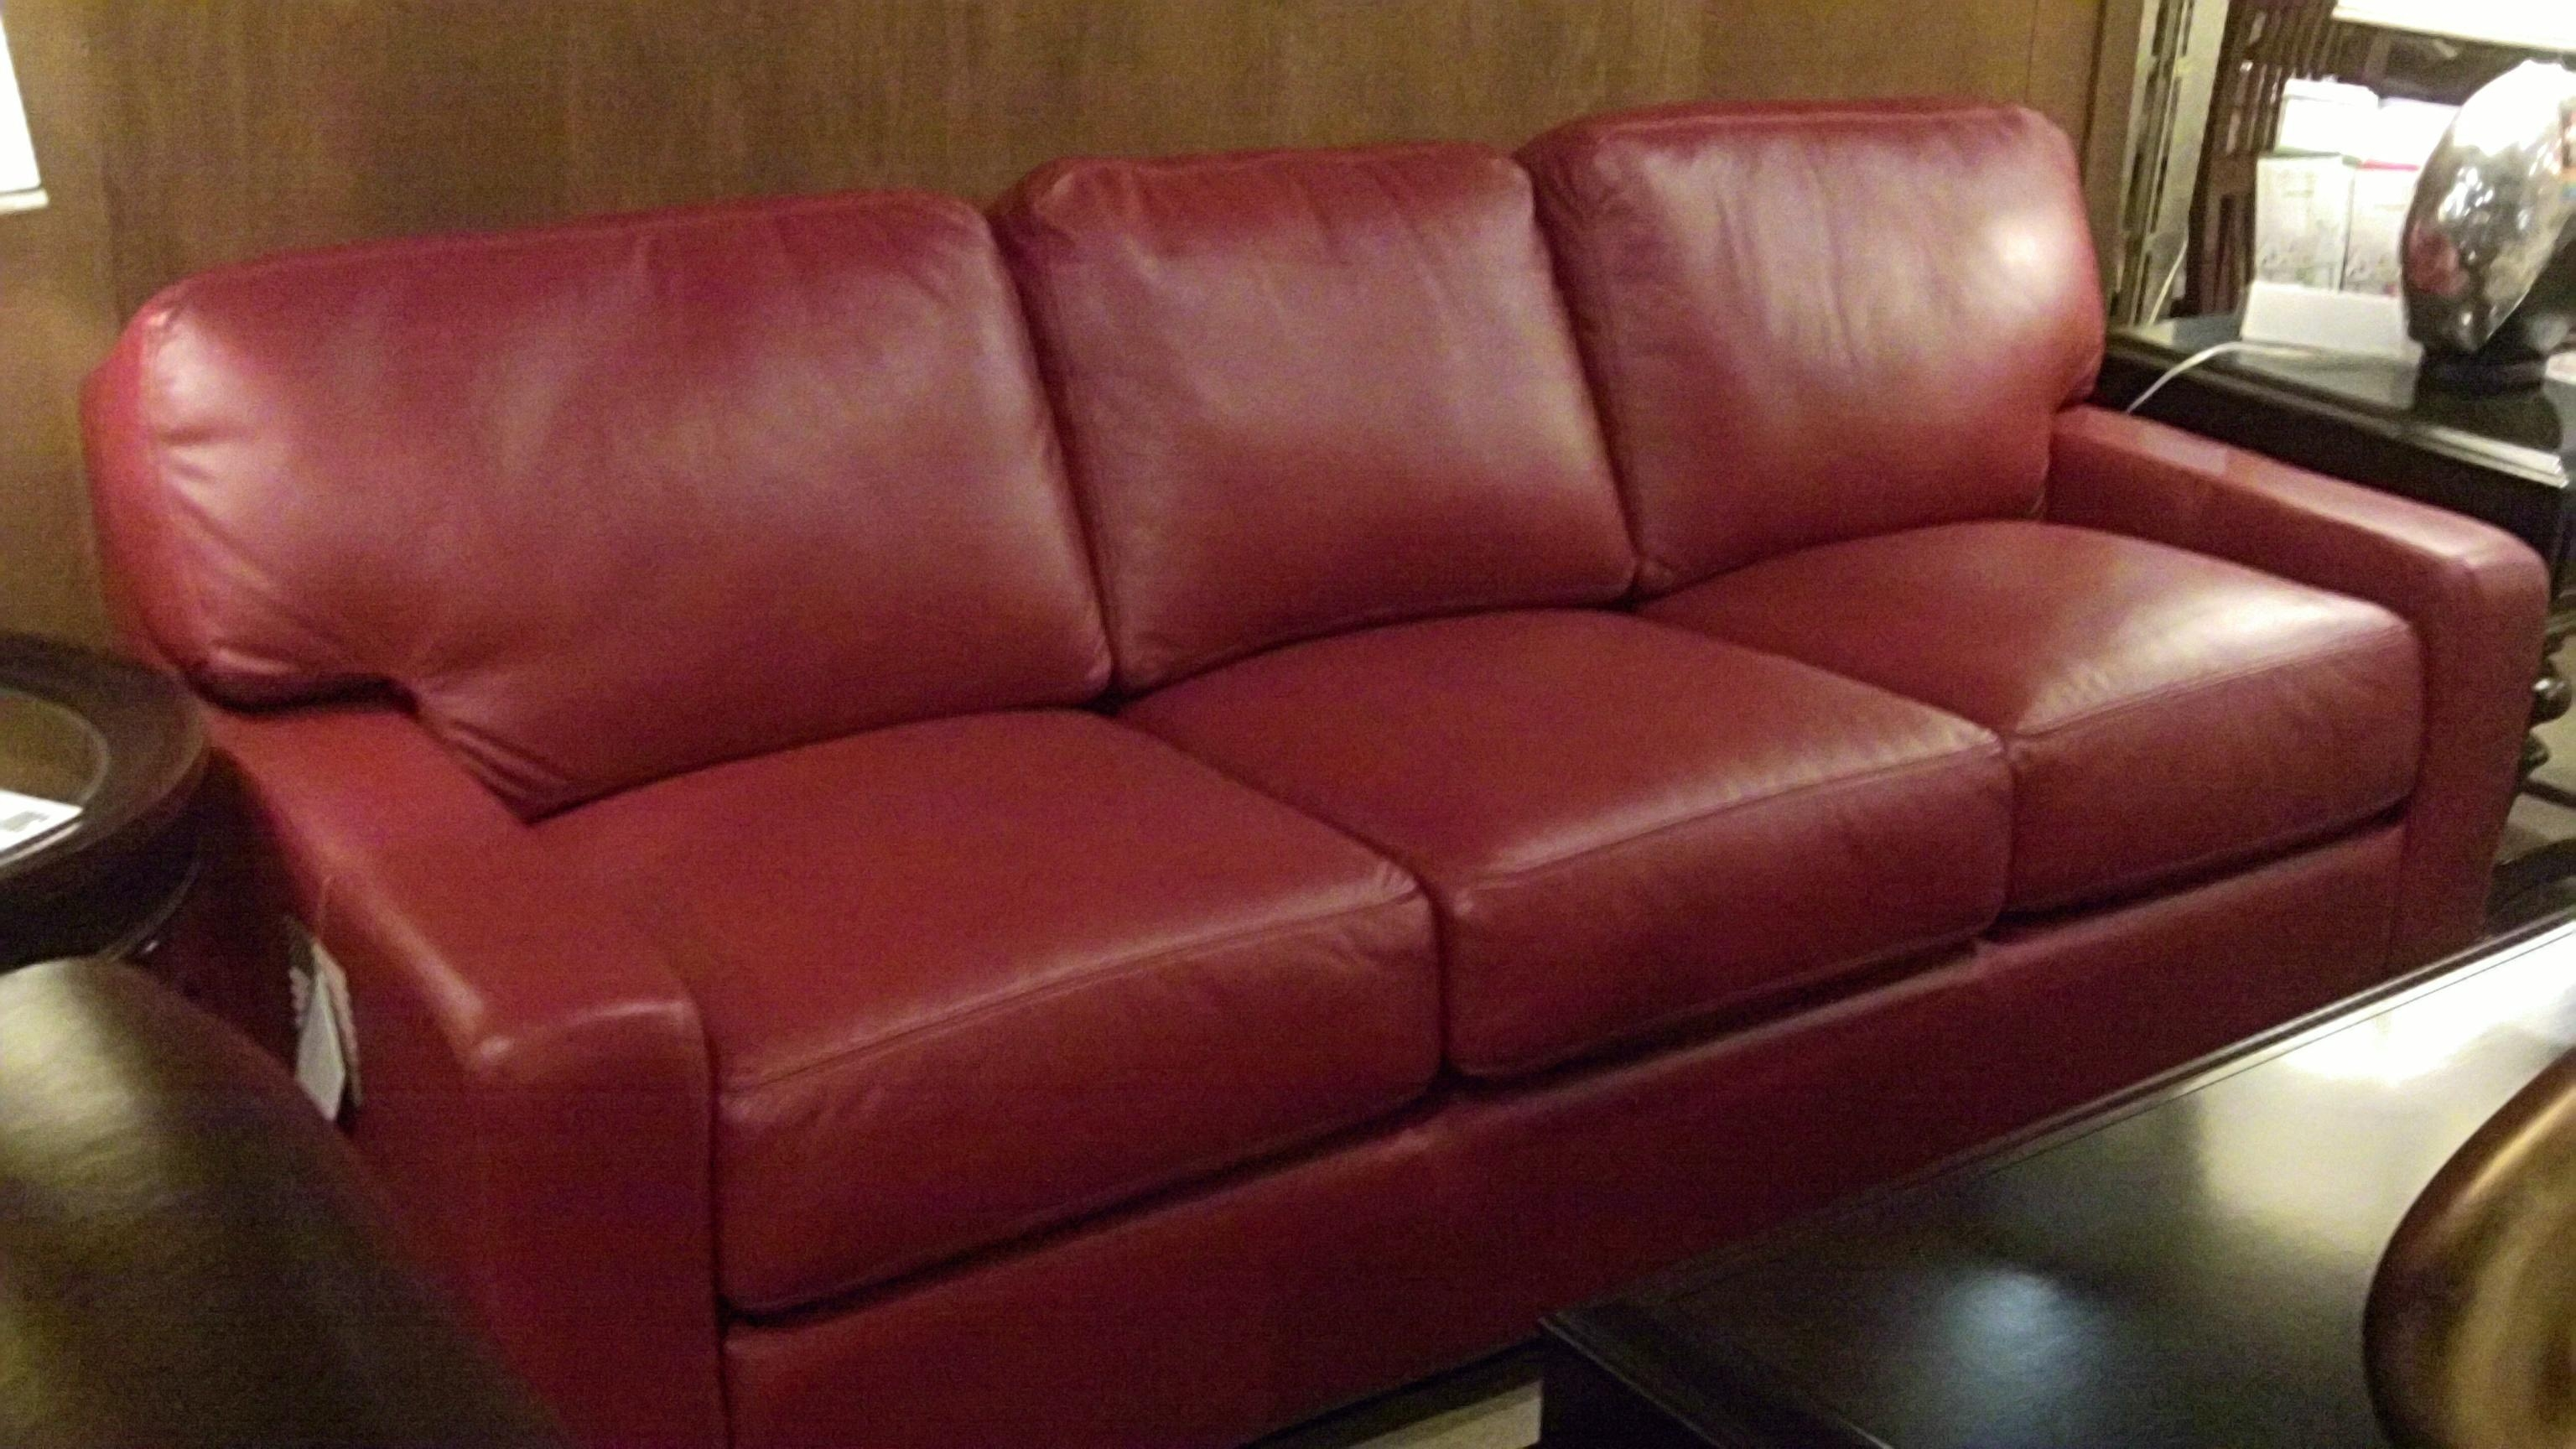 red leather chair and ottoman cover rentals fairfield ca 20 photos dark sofas sofa ideas